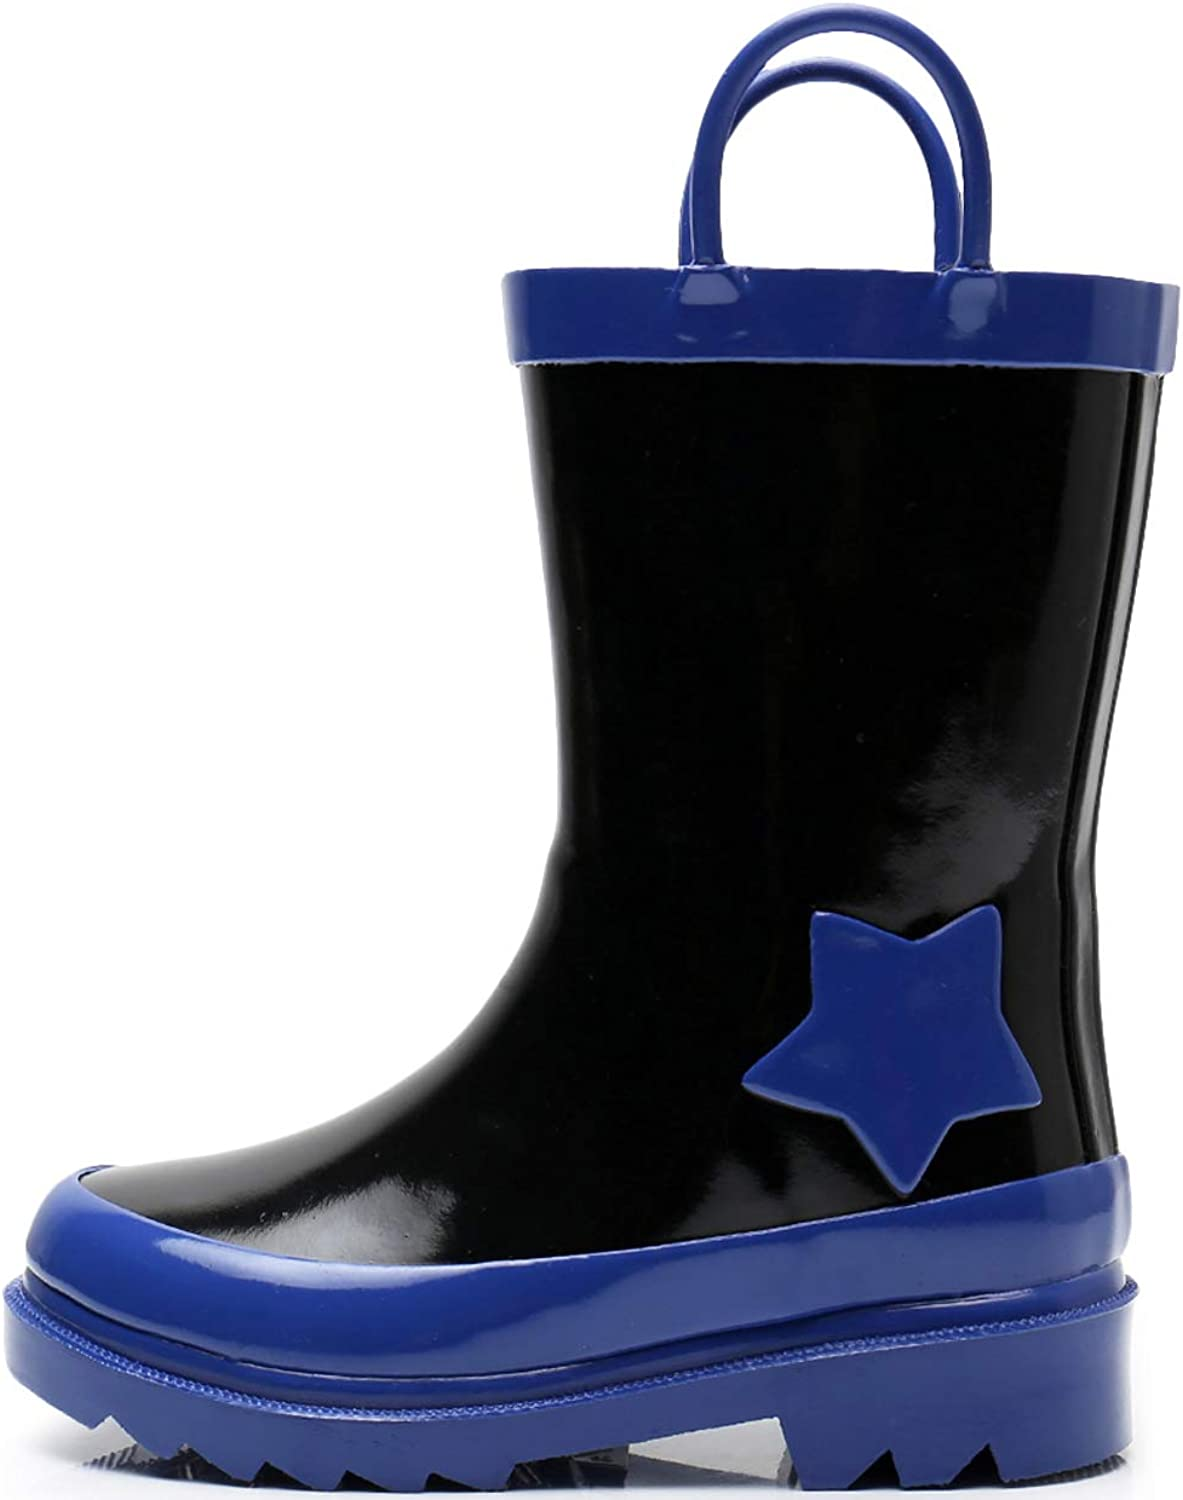 SOLARRAIN Toddler Boys Rubber Waterproof Rain Boots for Kids Outdoor Non Slip Durable Rain Shoes with Easy On Handles